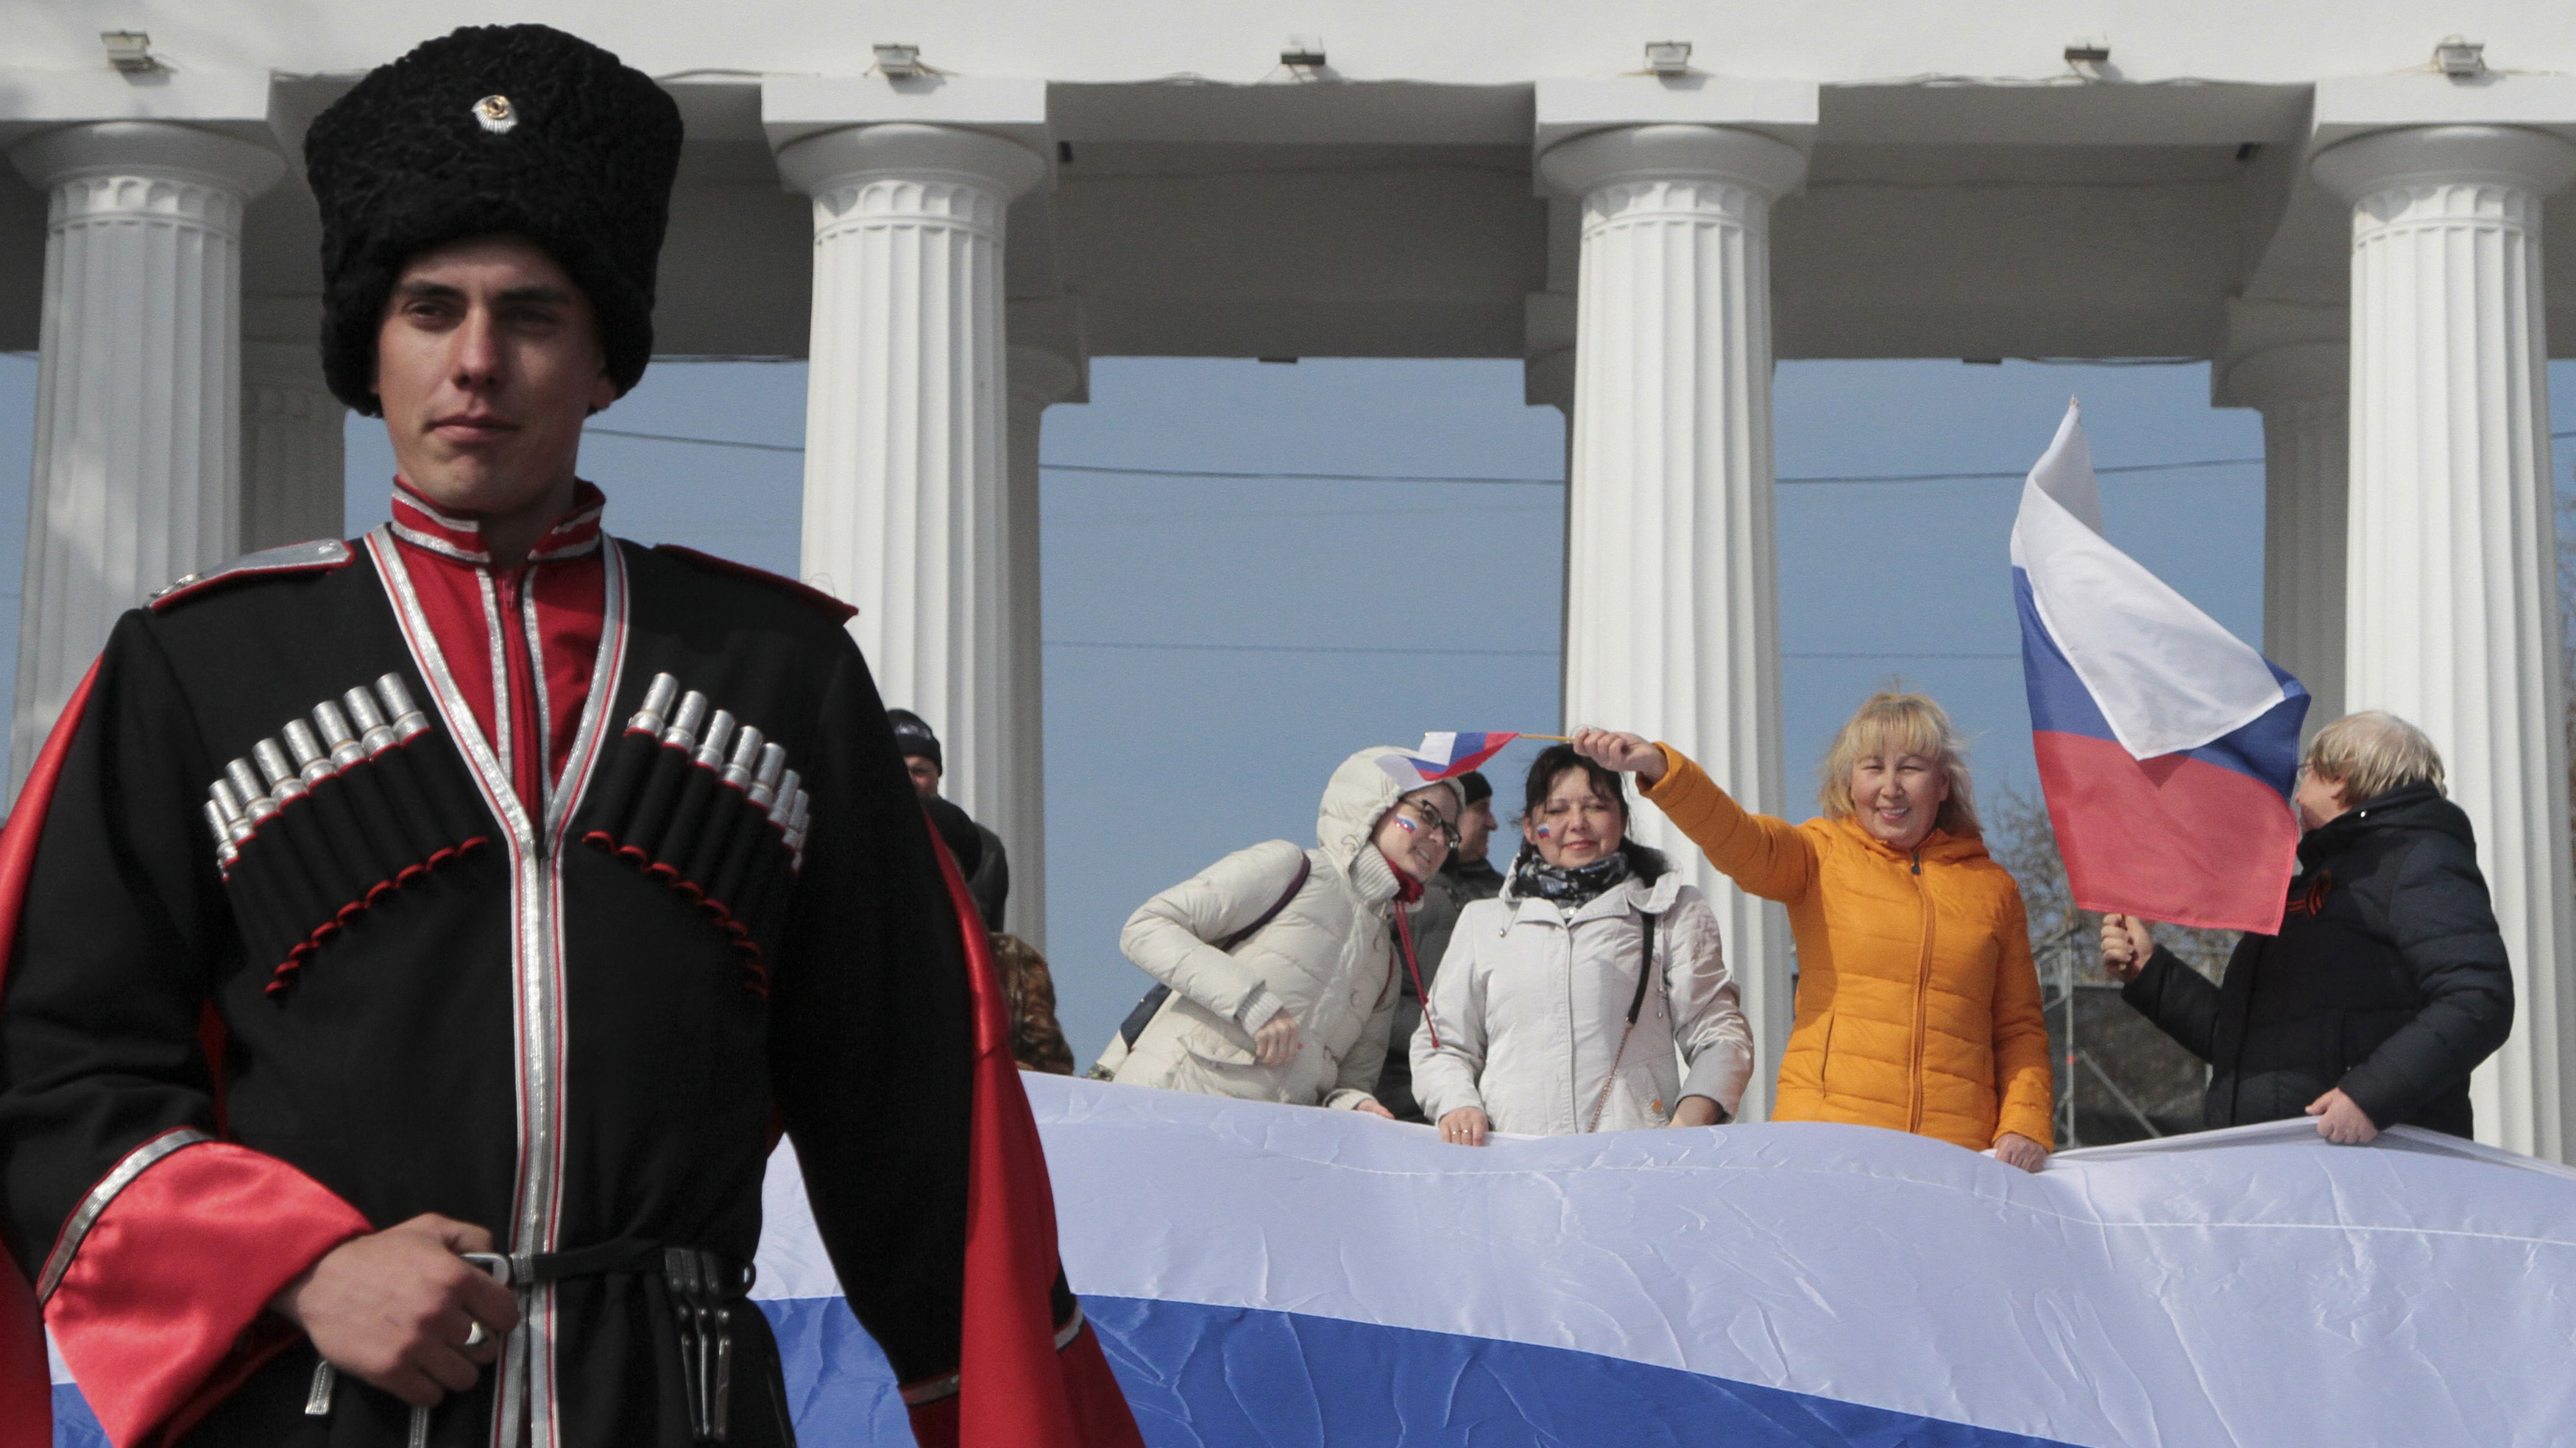 A Russian soldier stands in the foreground of citizens celebrating, waving flags